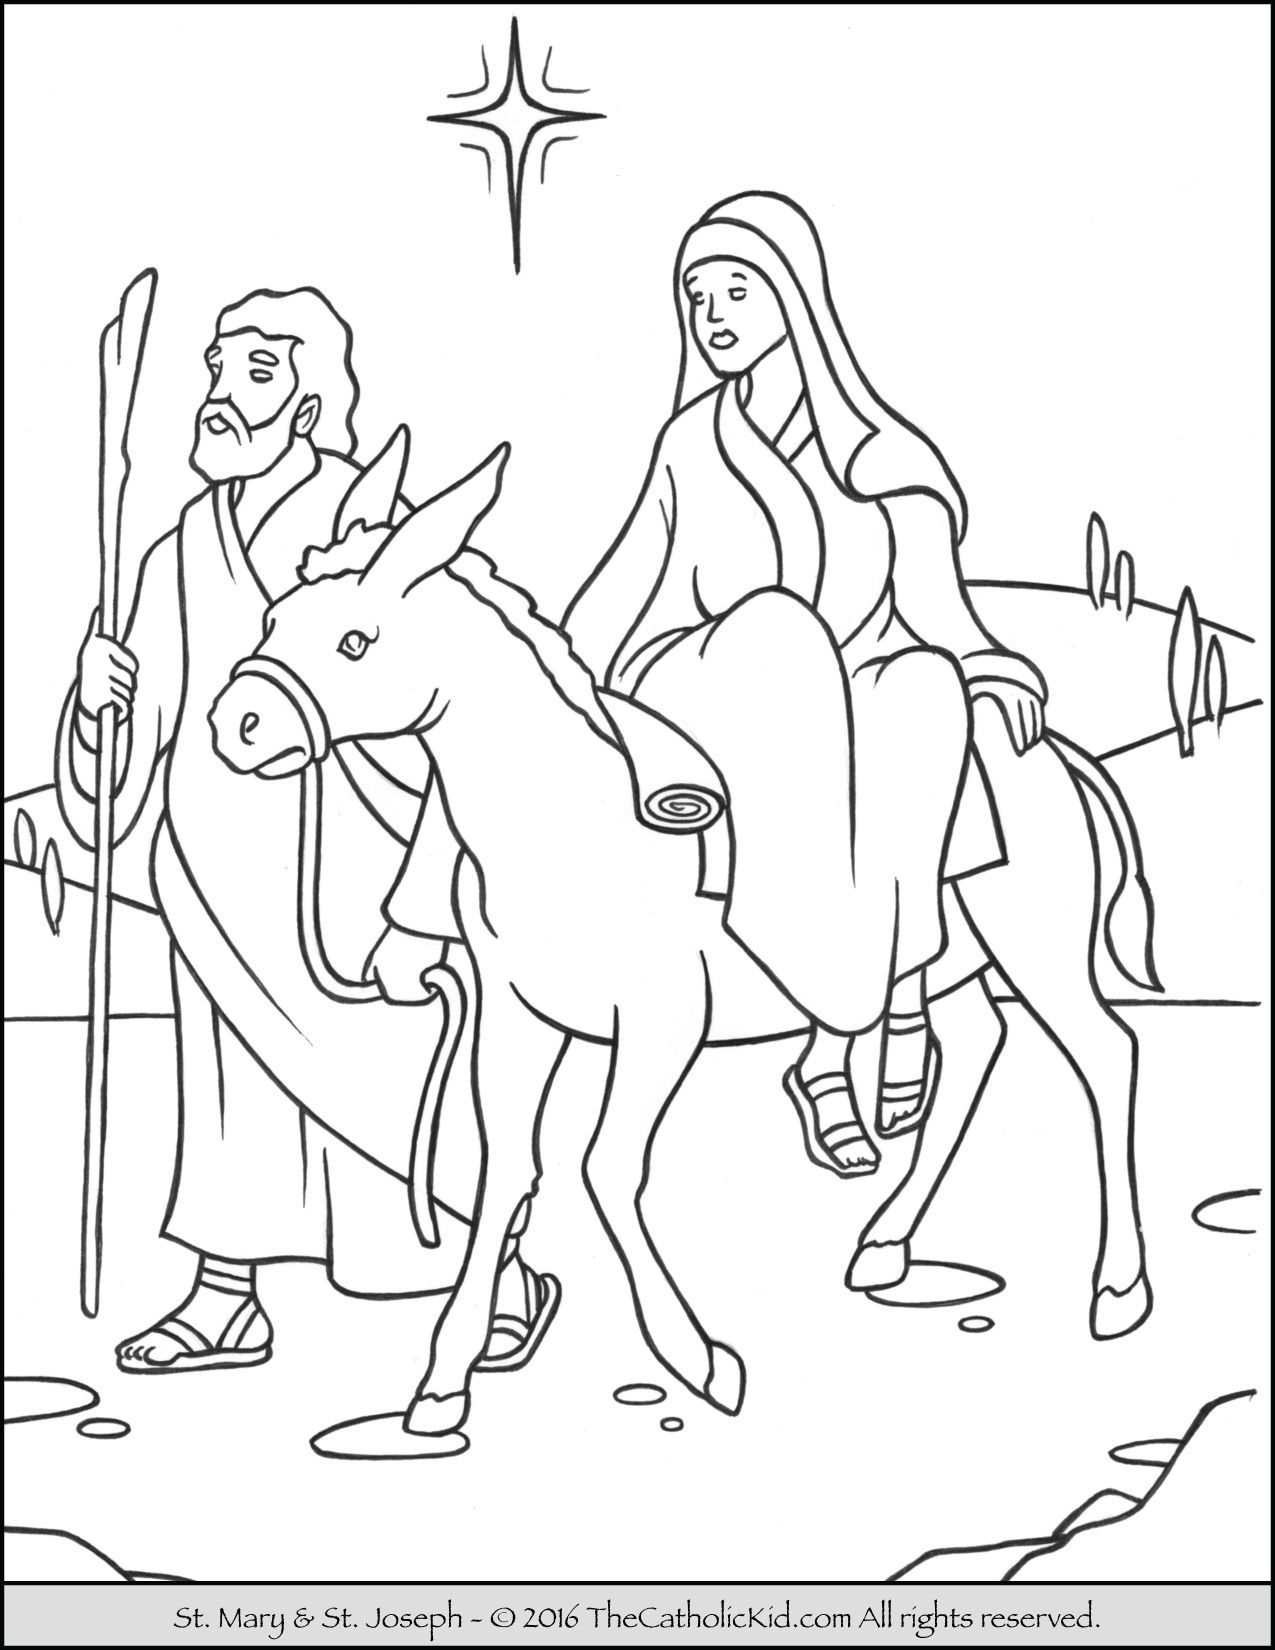 Advent Amp Christmas Coloring Page Of Joseph And Mary On The Journey To Bethlehem For The Census